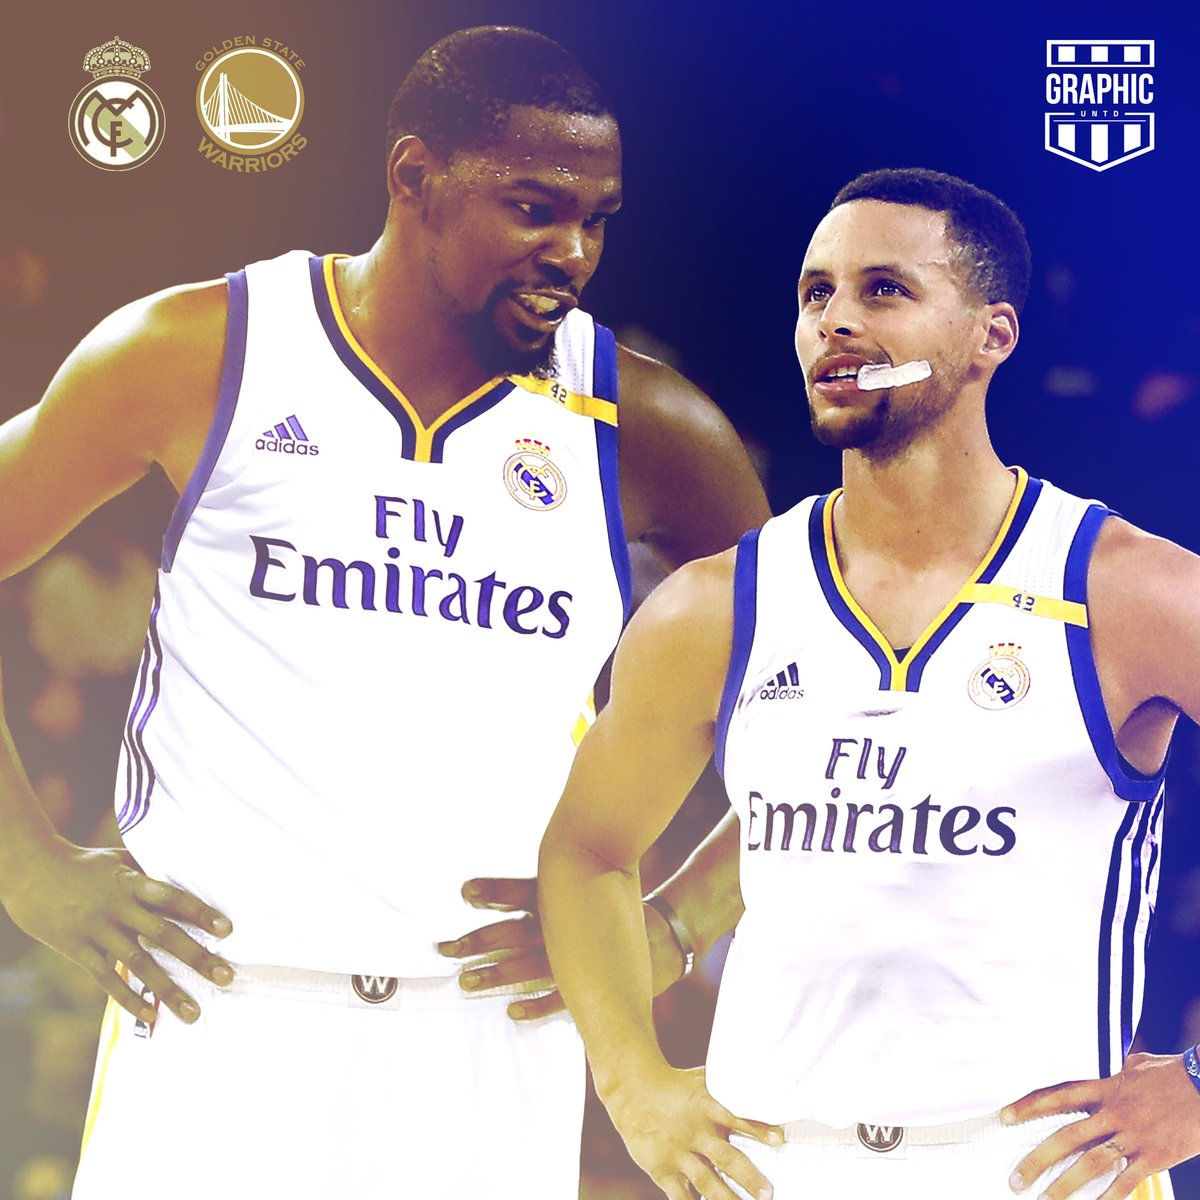 steph-curry-nba-real-madrid-maillot-golden-state-warriors